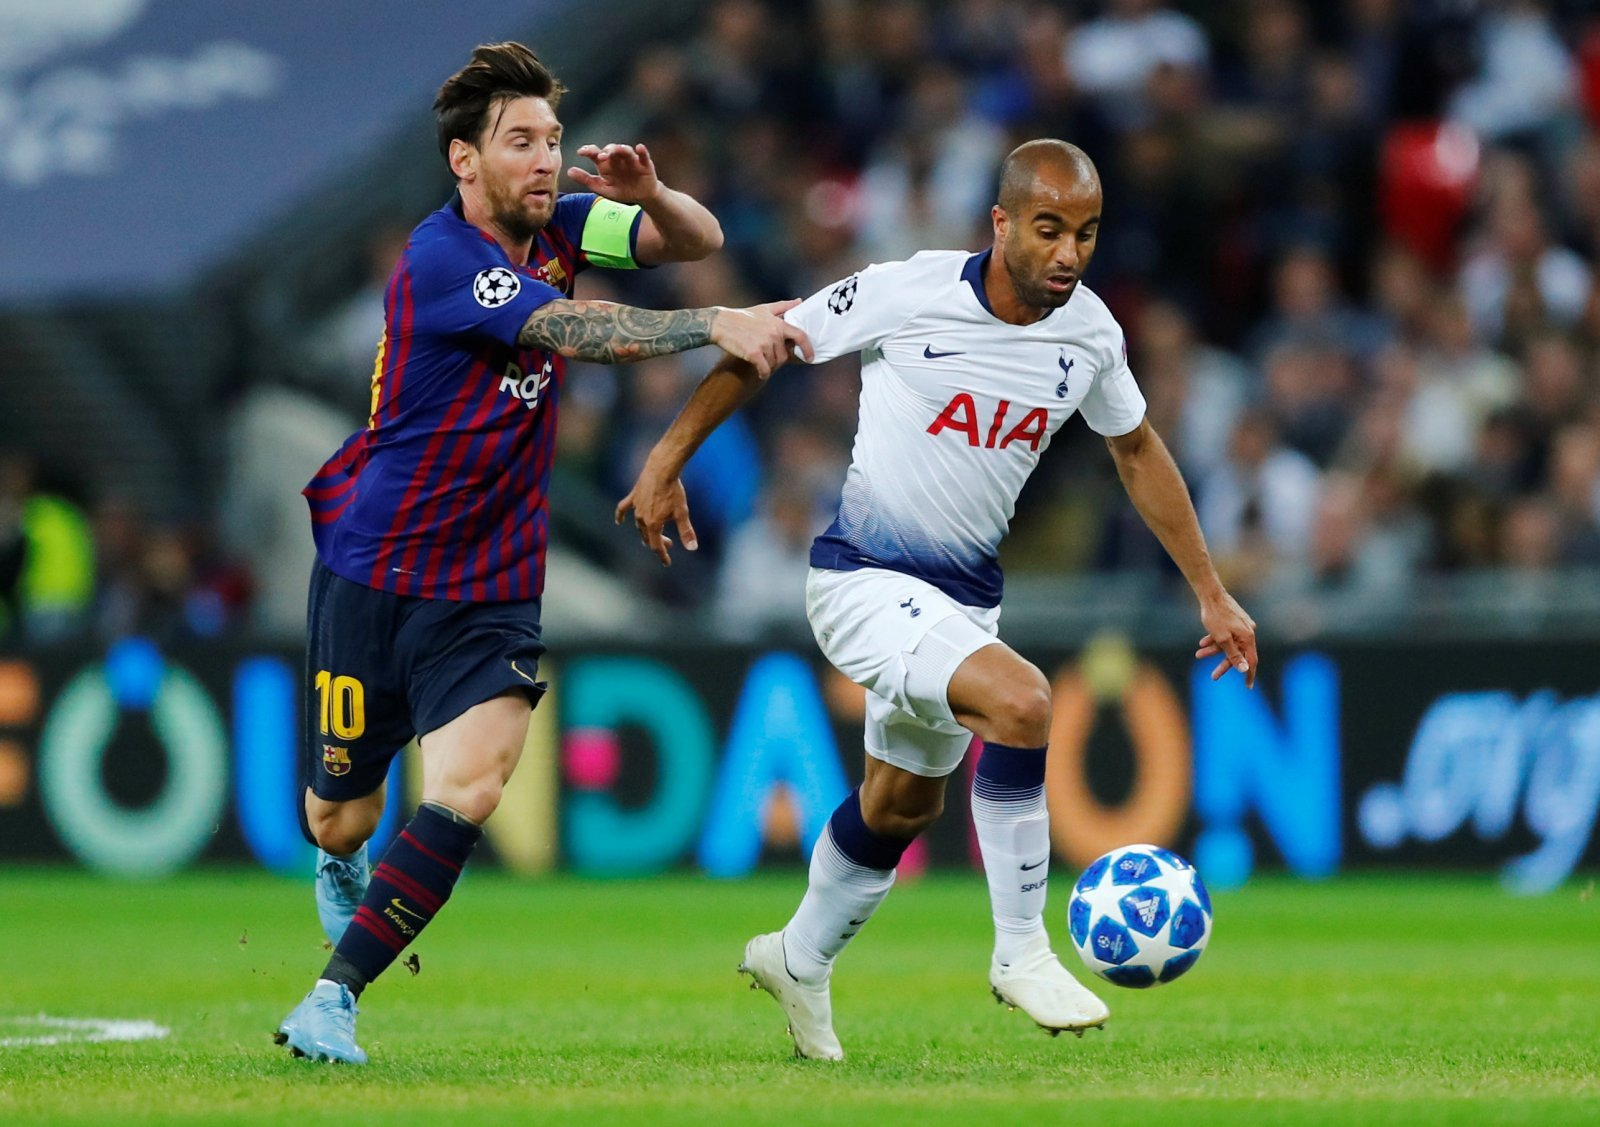 Tottenham fans react to Lucas Moura's Champions League performance